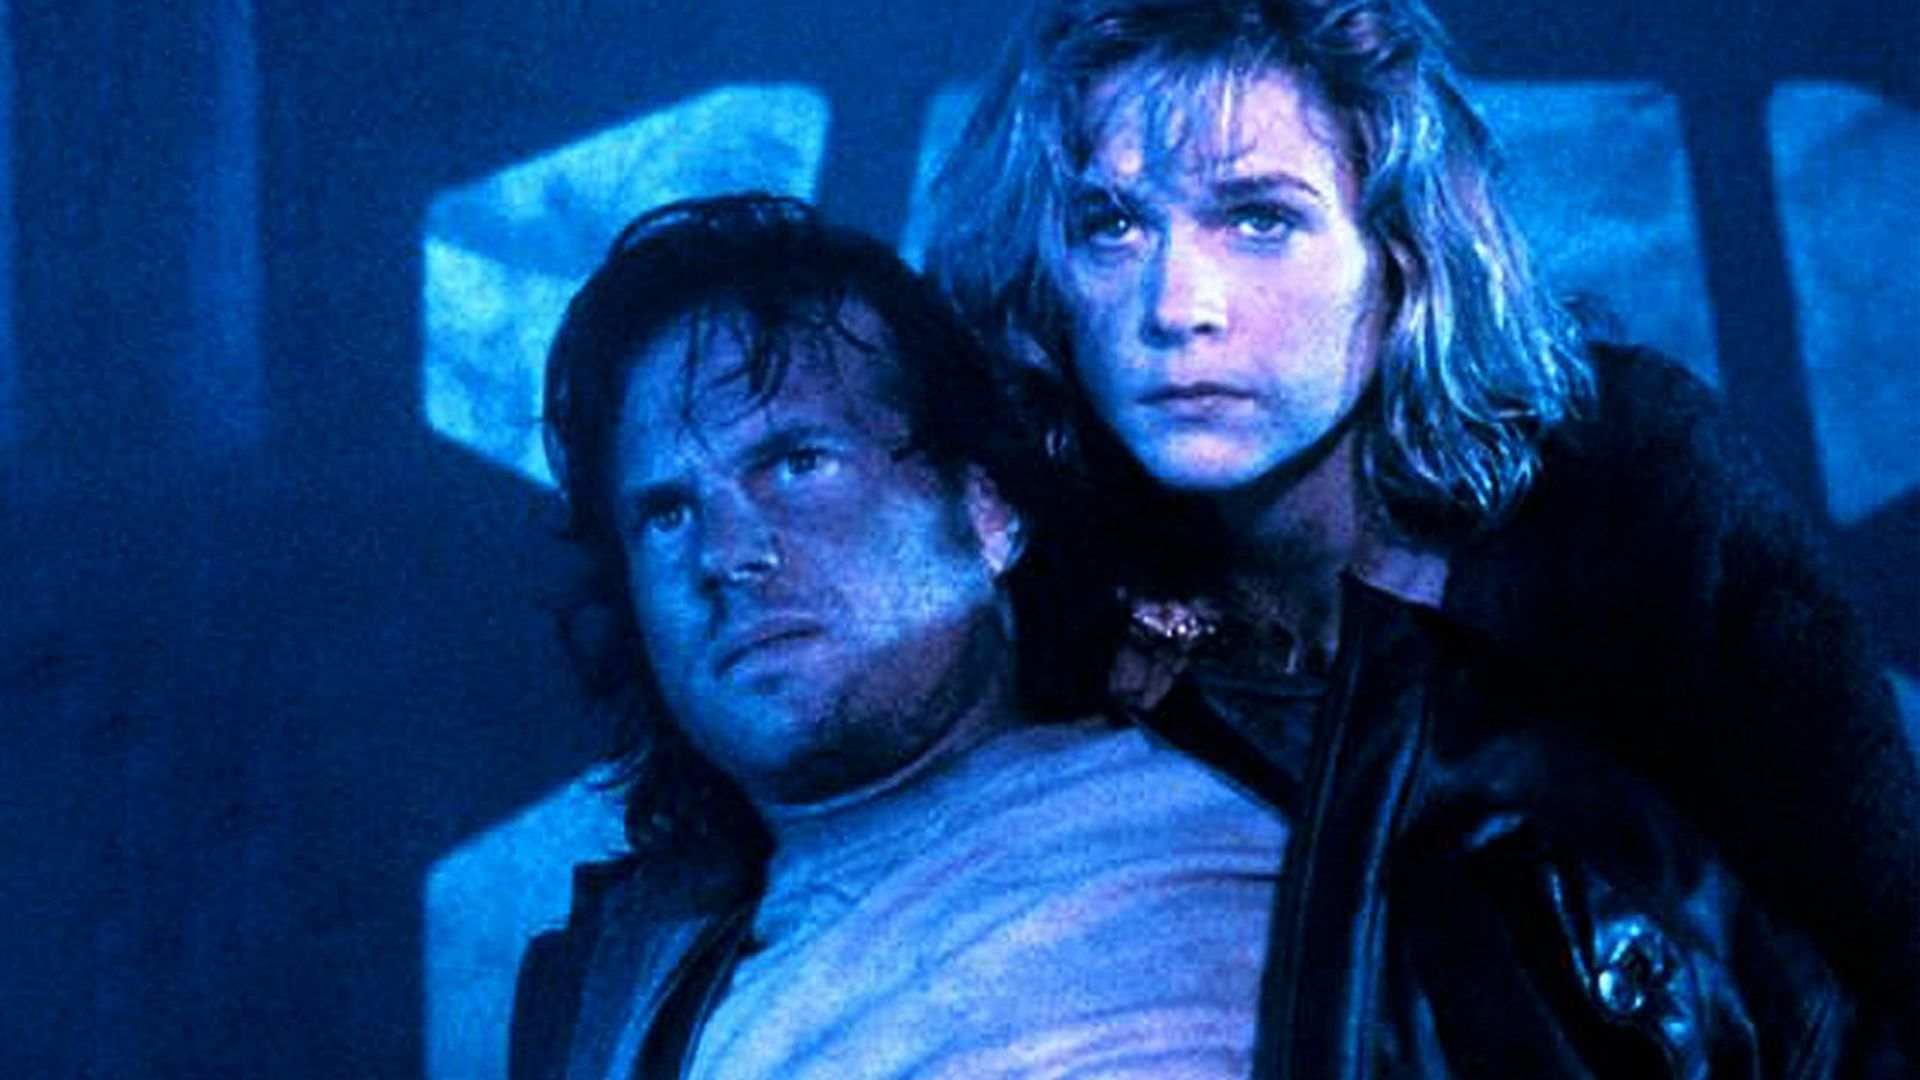 Bill Paxton and Lindsay Frost in Monolith (1994)